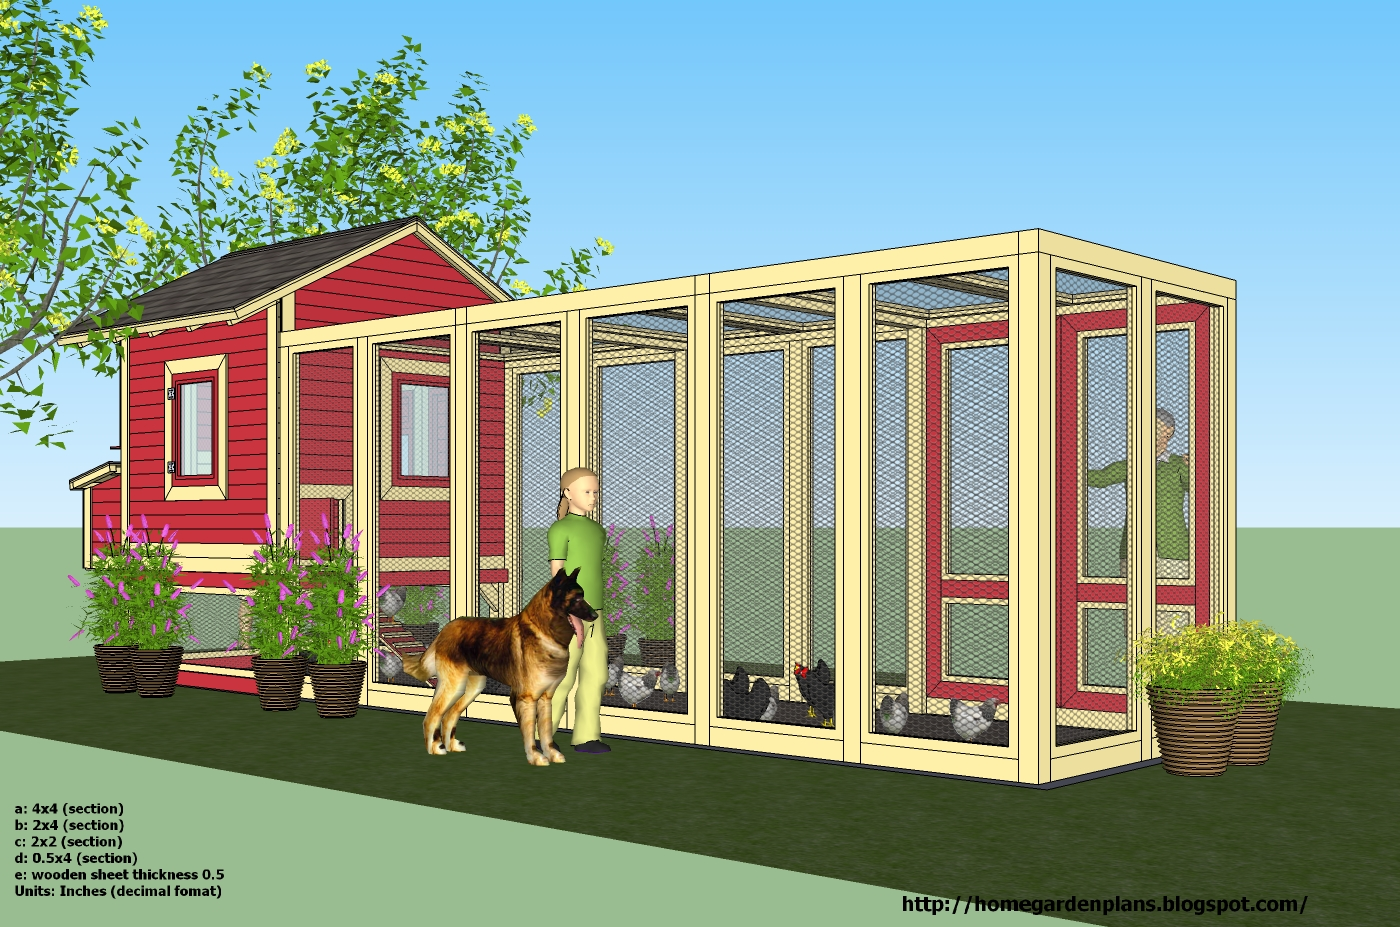 Home garden plans chicken coops for Chicken coop designs for 3 chickens